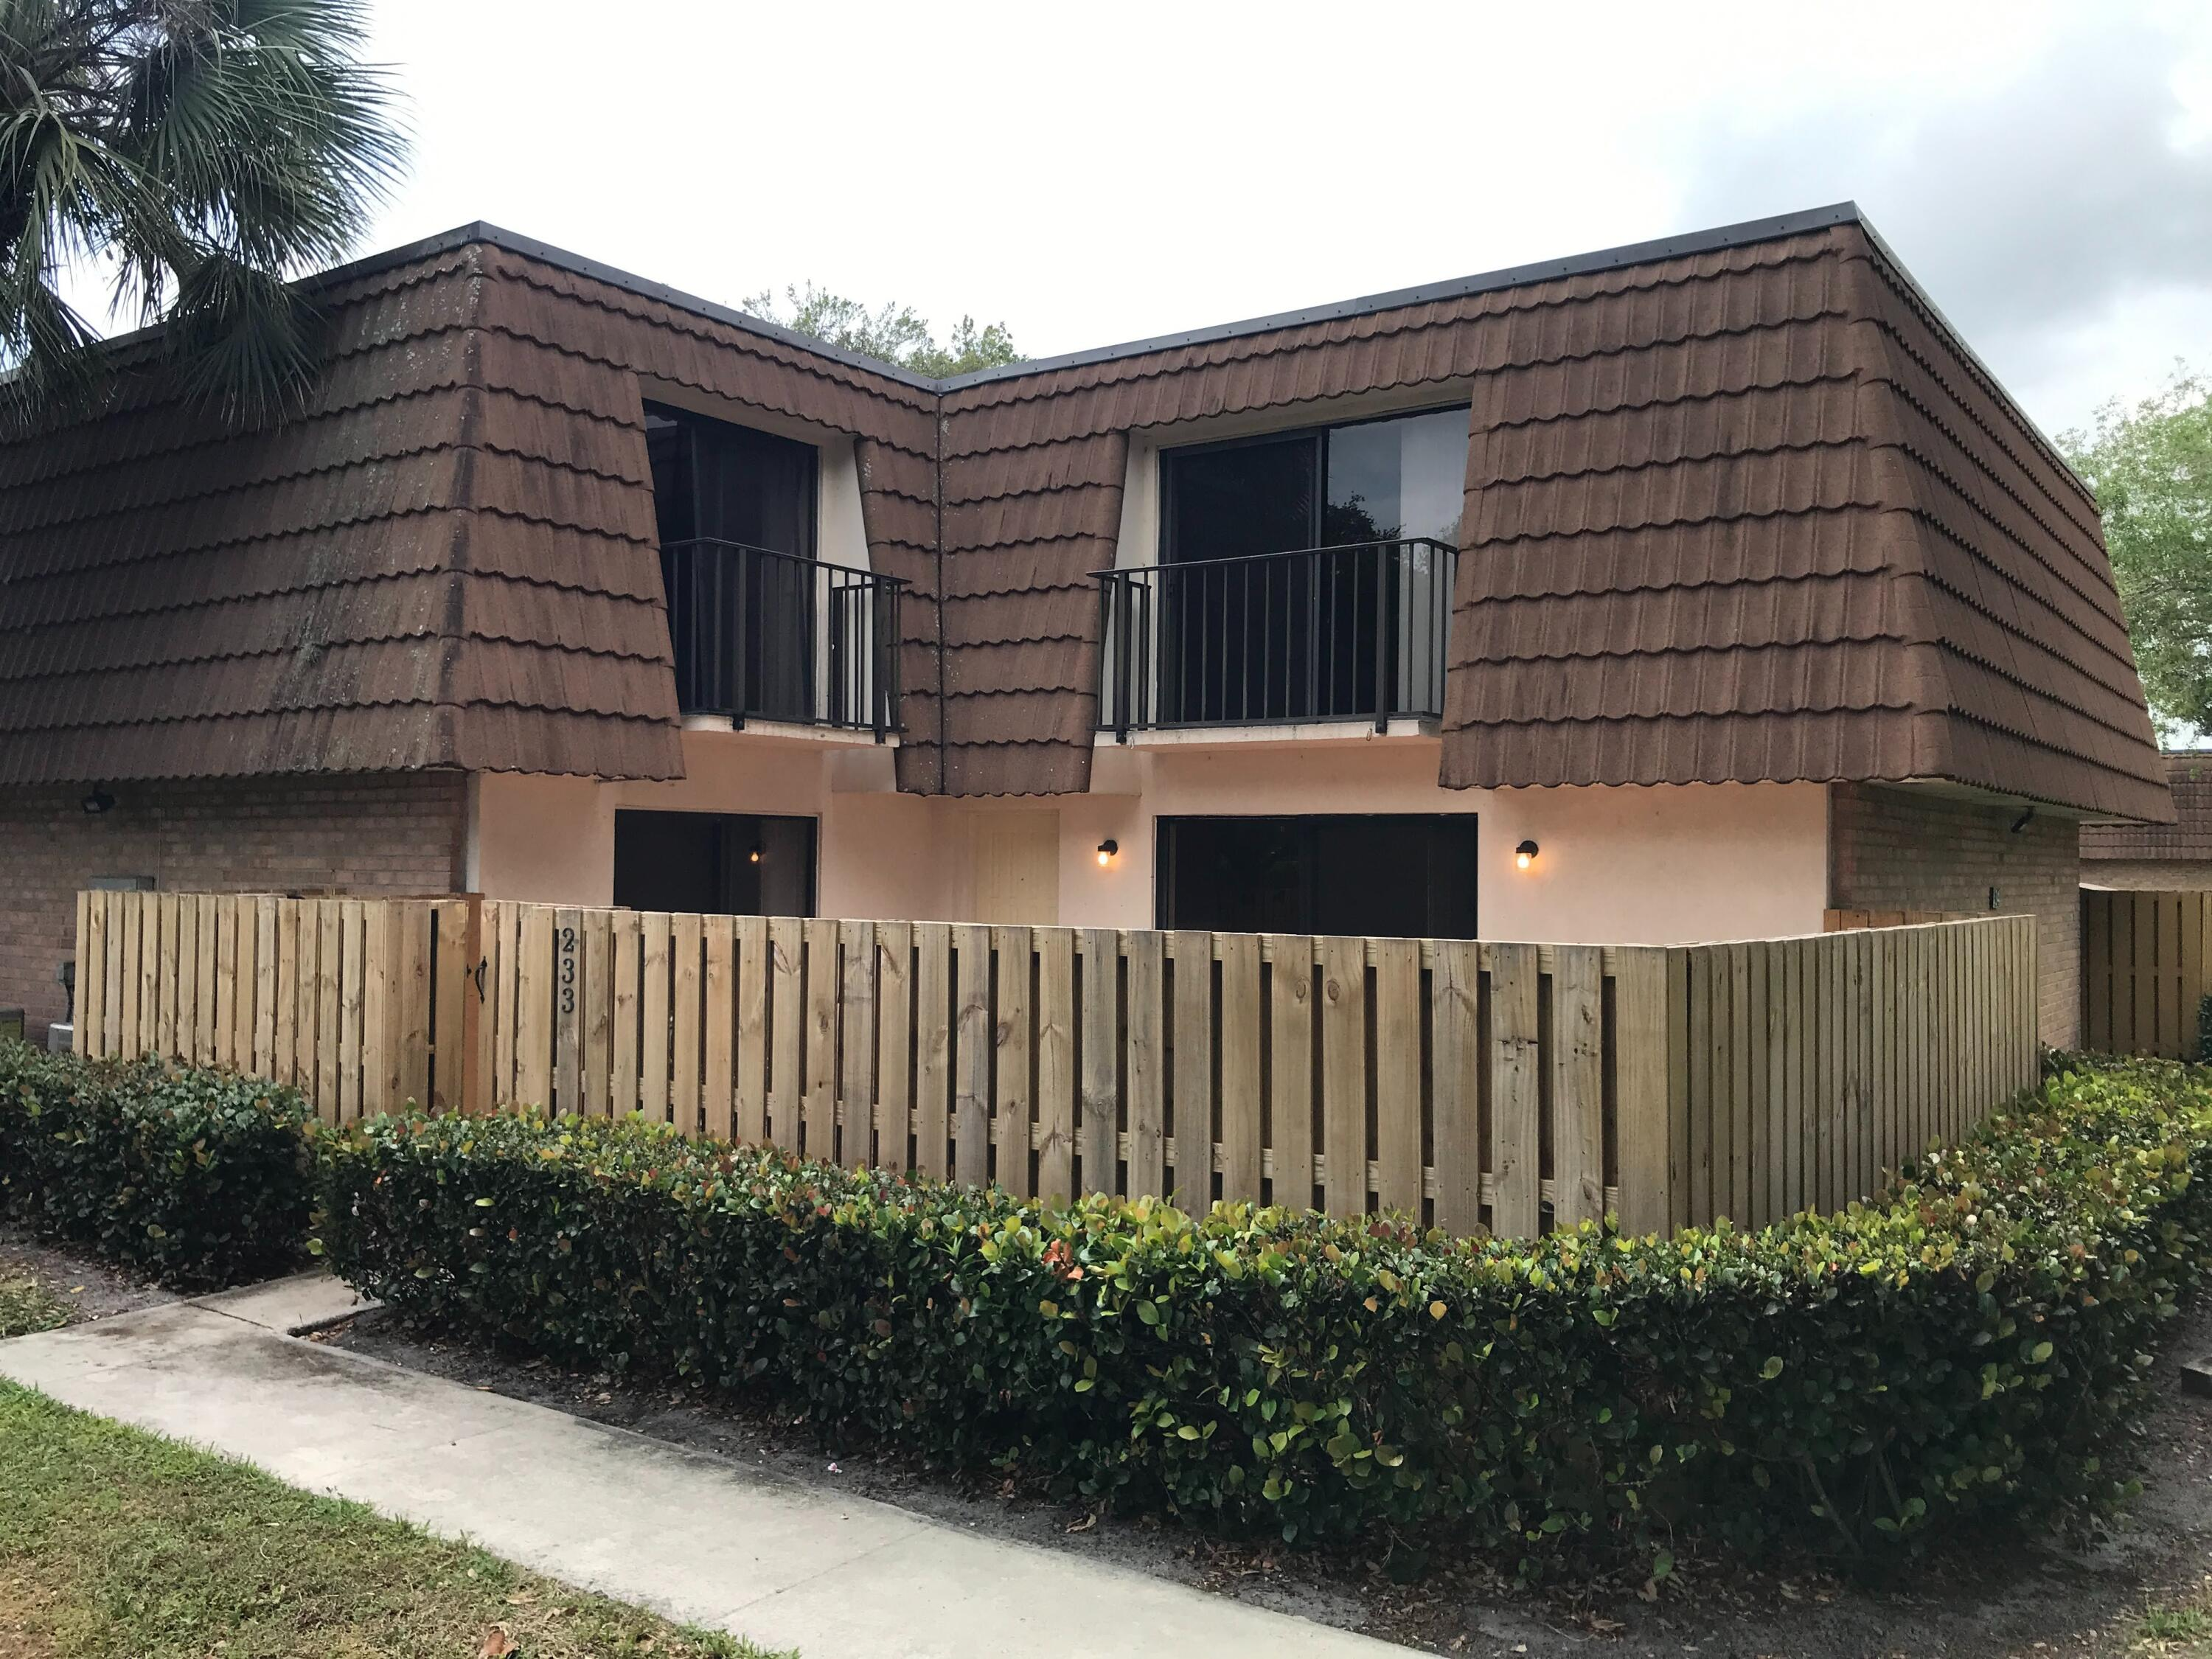 233 Charter Way - 33407 - FL - West Palm Beach